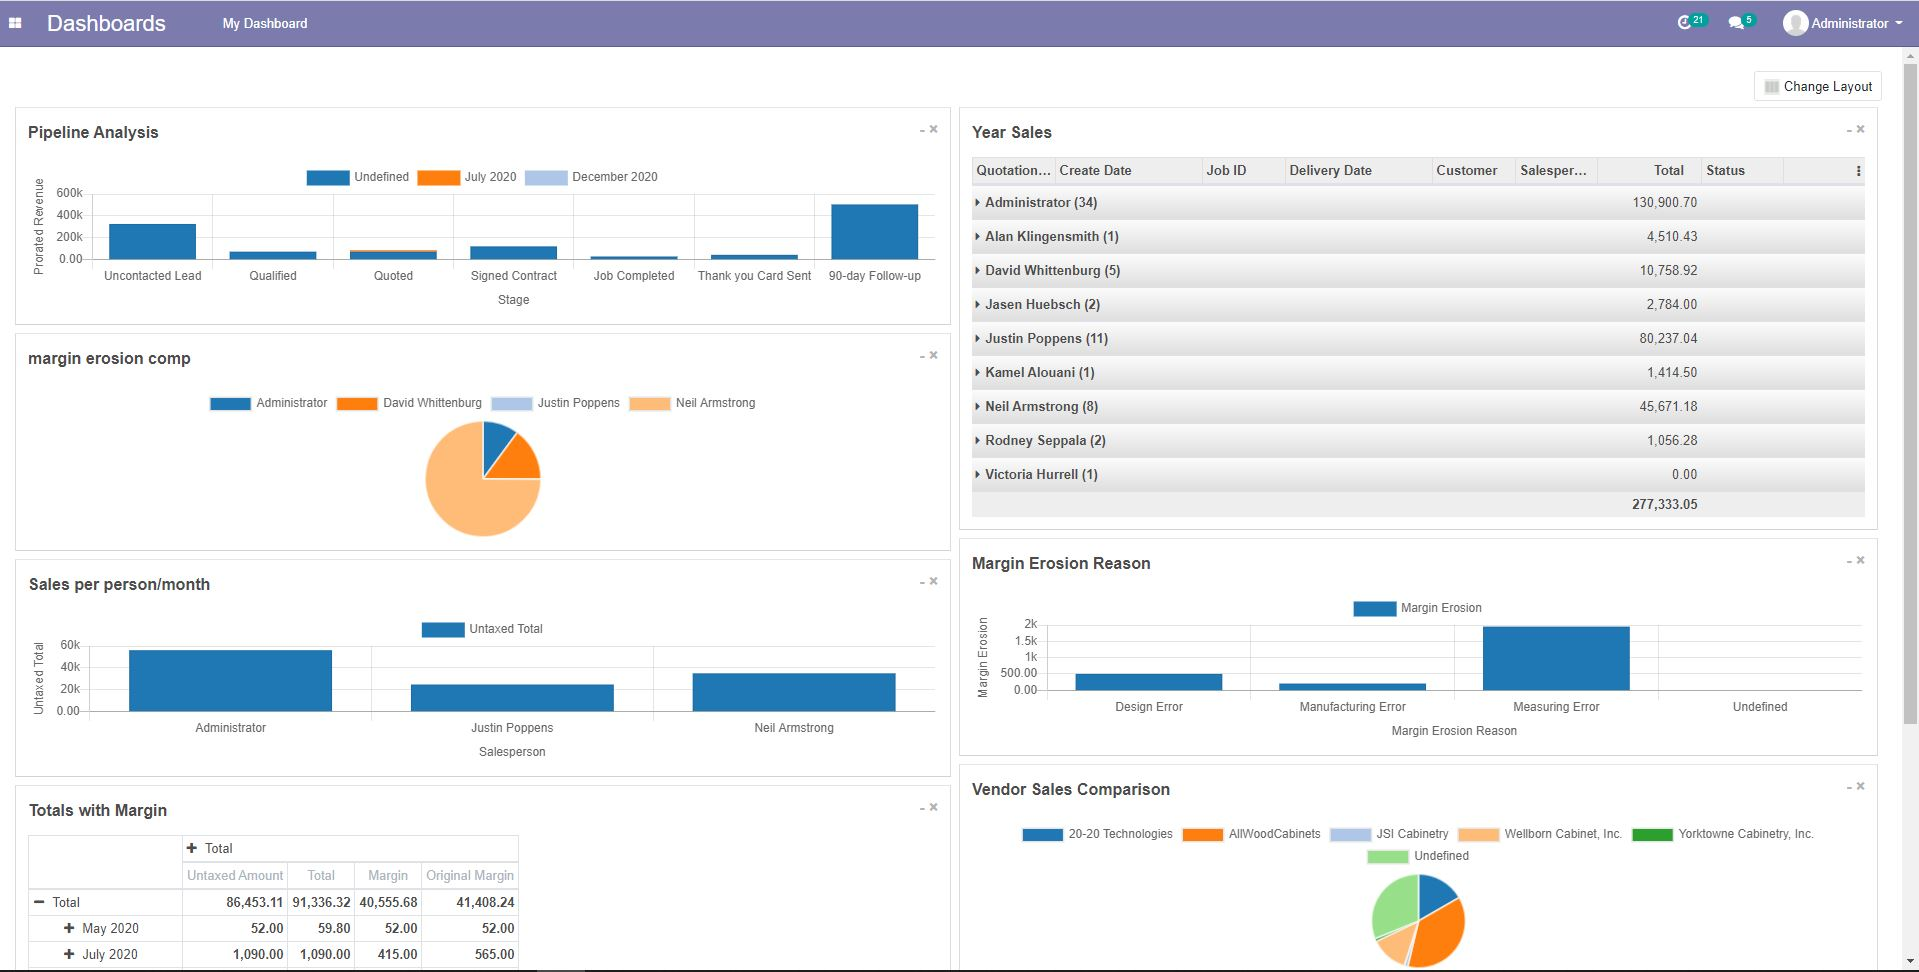 Kabs Dashboard for Kitchebn & Bath Businesses